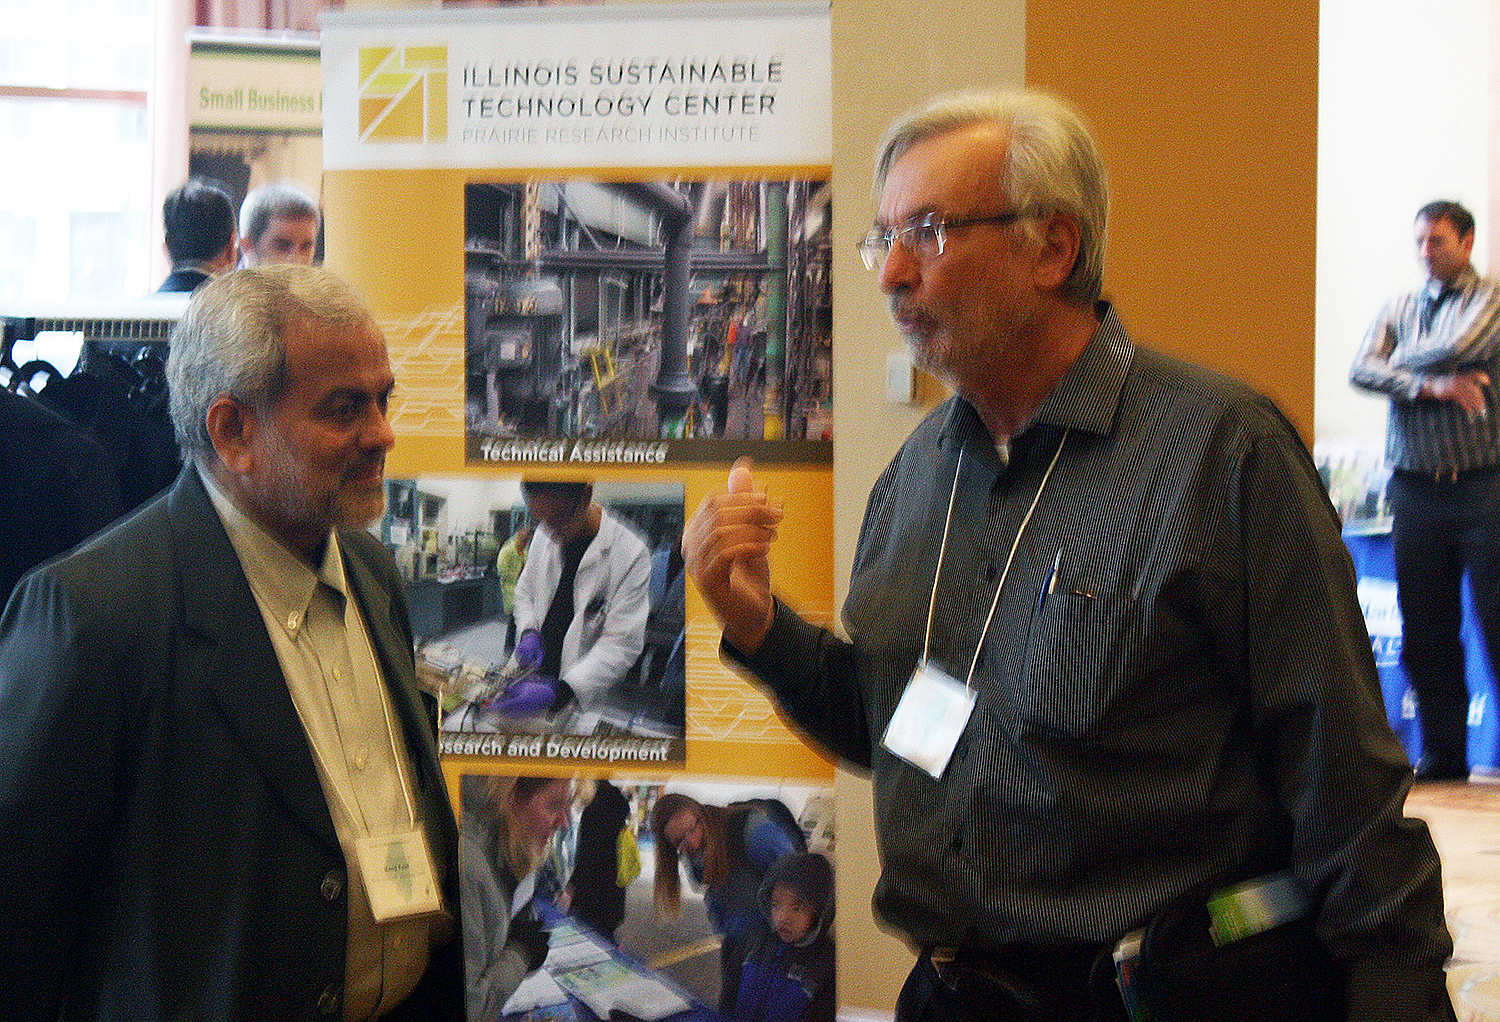 Vinod Patel talking with an attendee